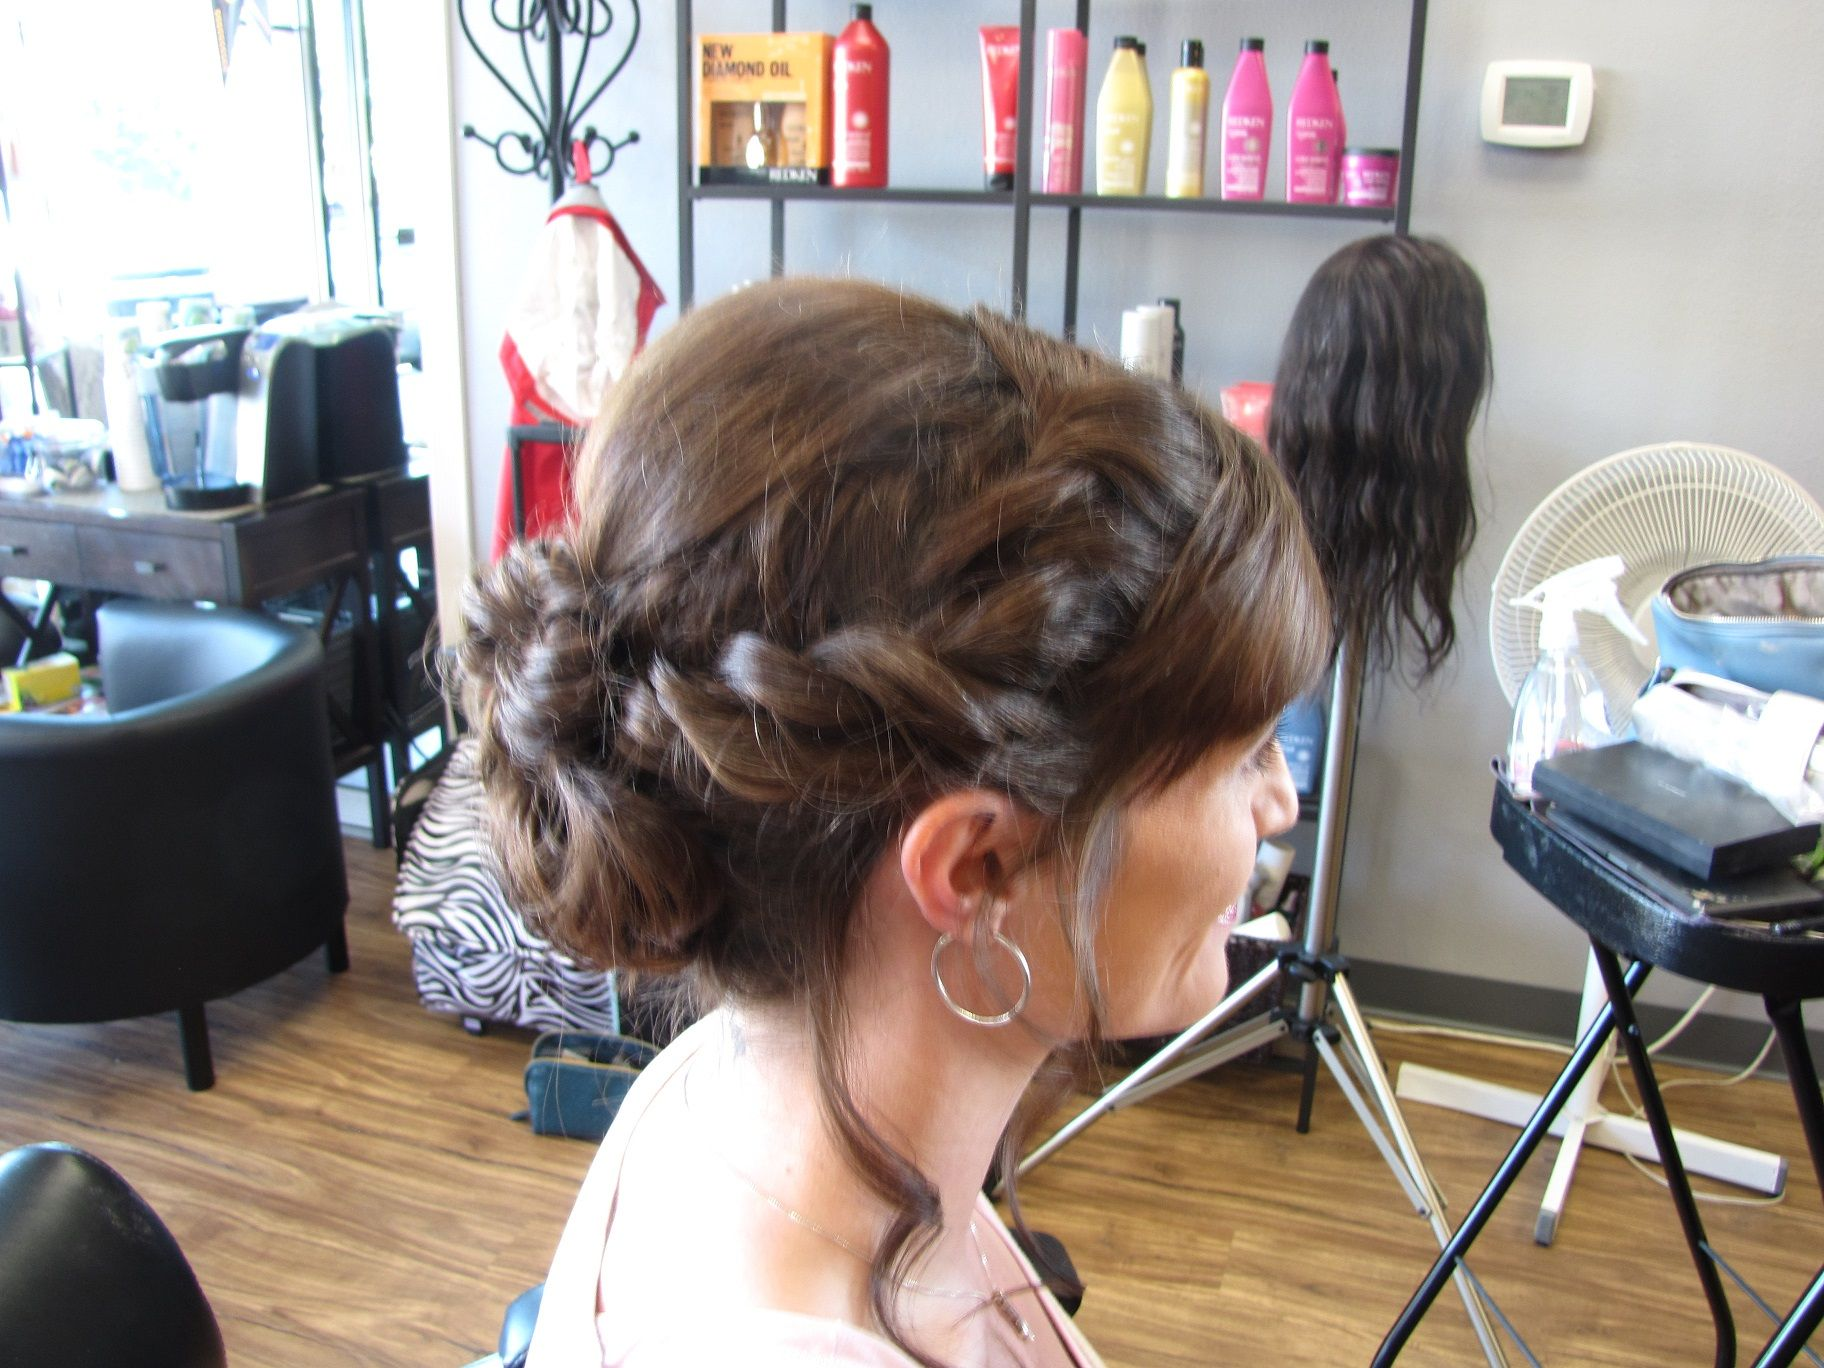 Kat A trial - twisted updo